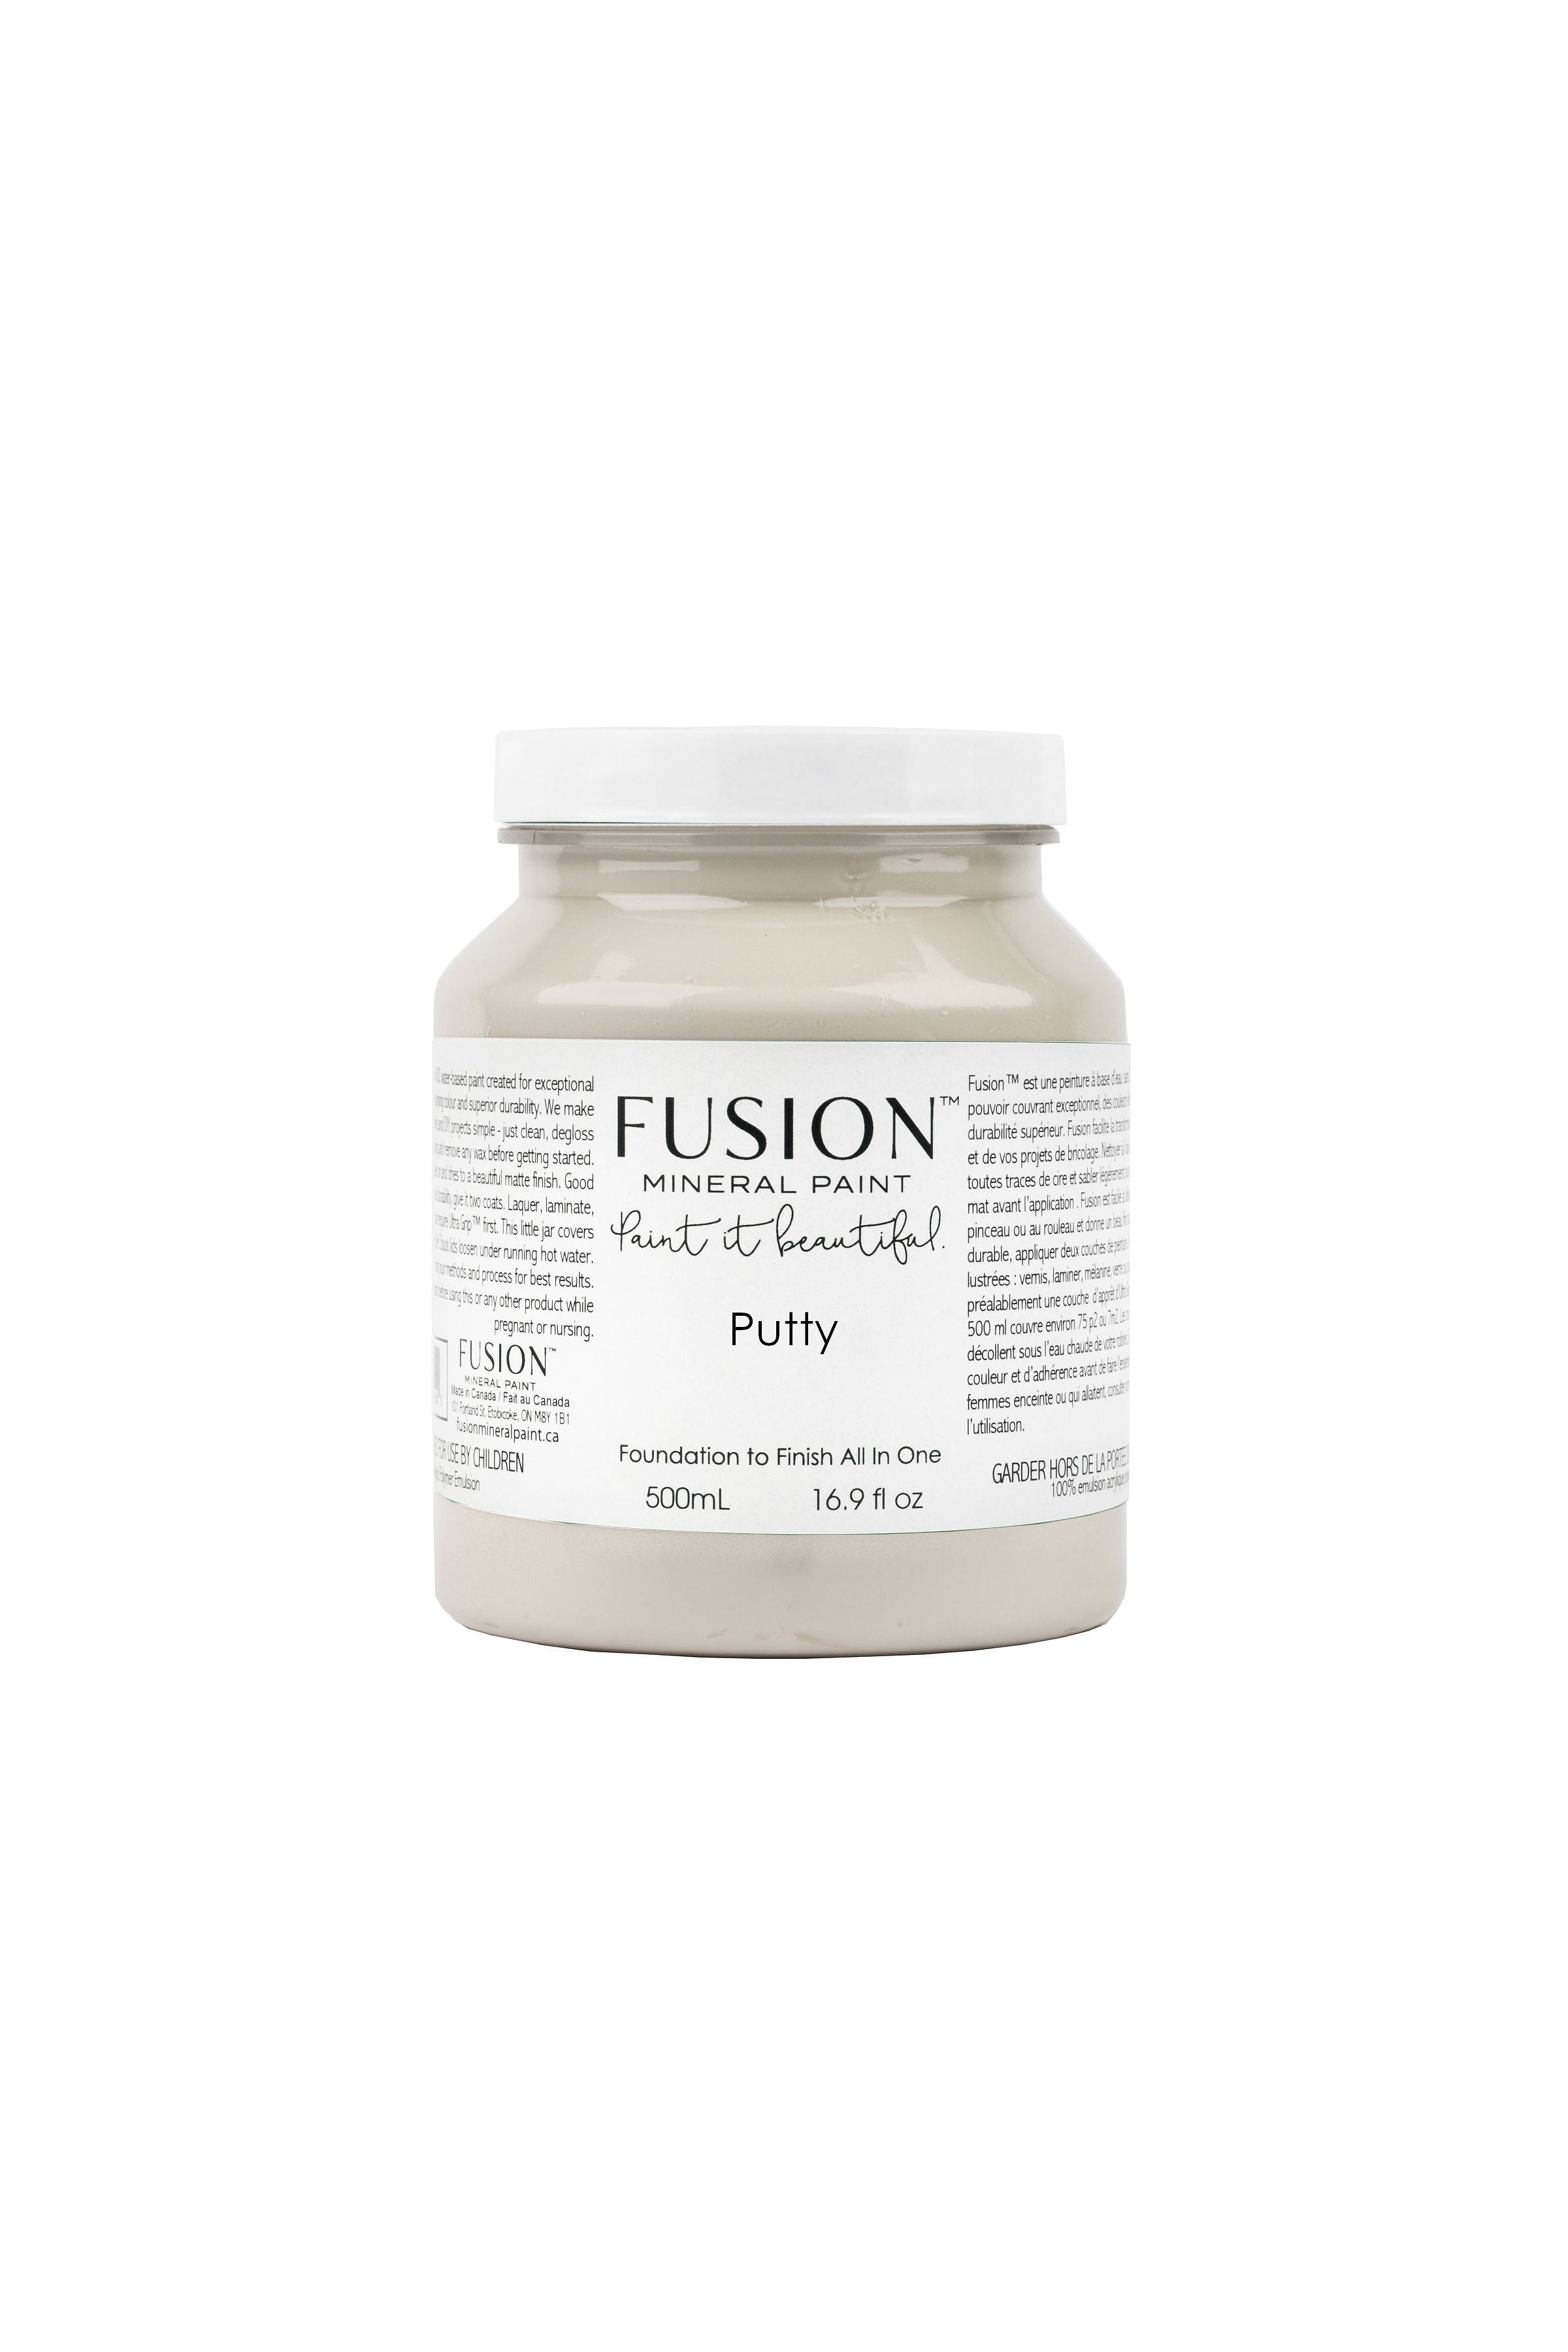 Putty - Fusion Mineral Paint - 500ml Pint